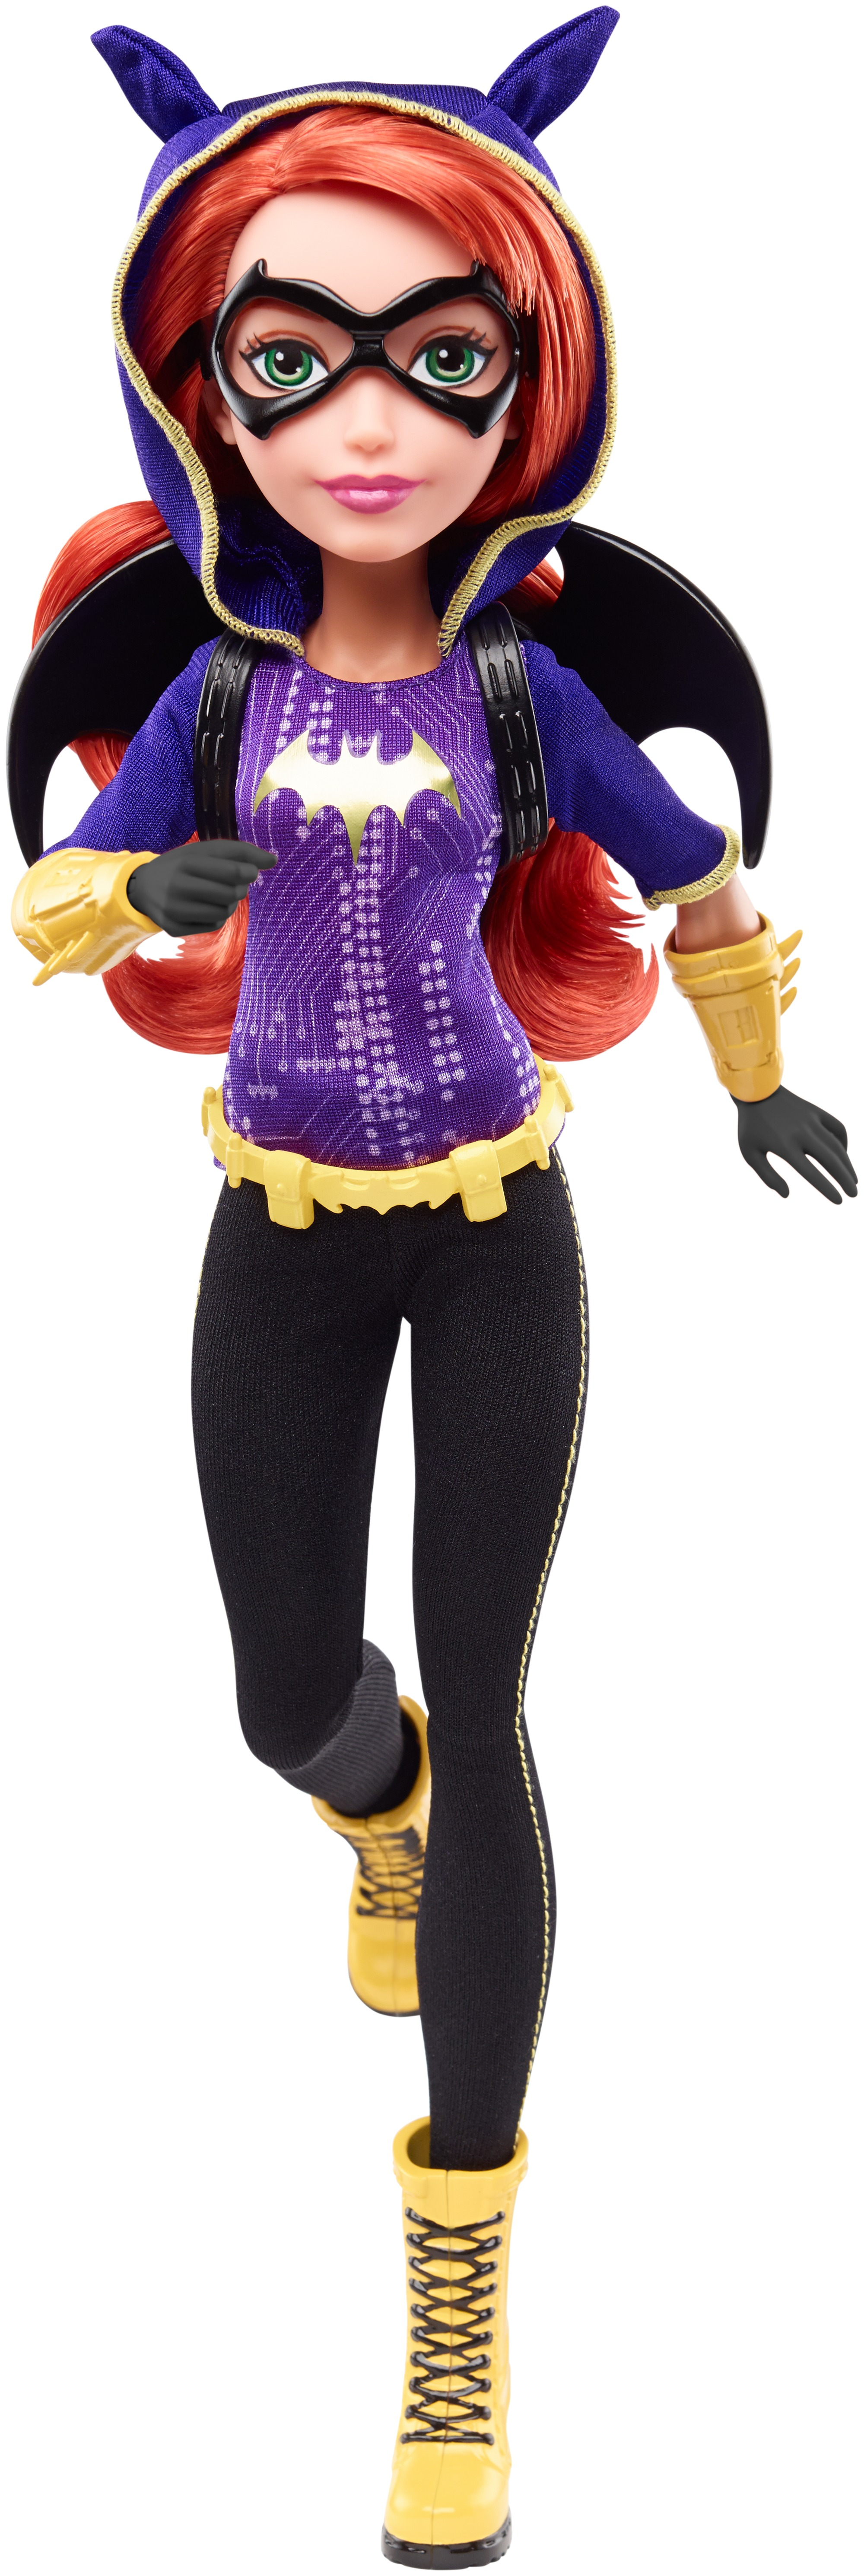 DC Super Hero Girls Batgirl Action Doll by MATTEL INC.